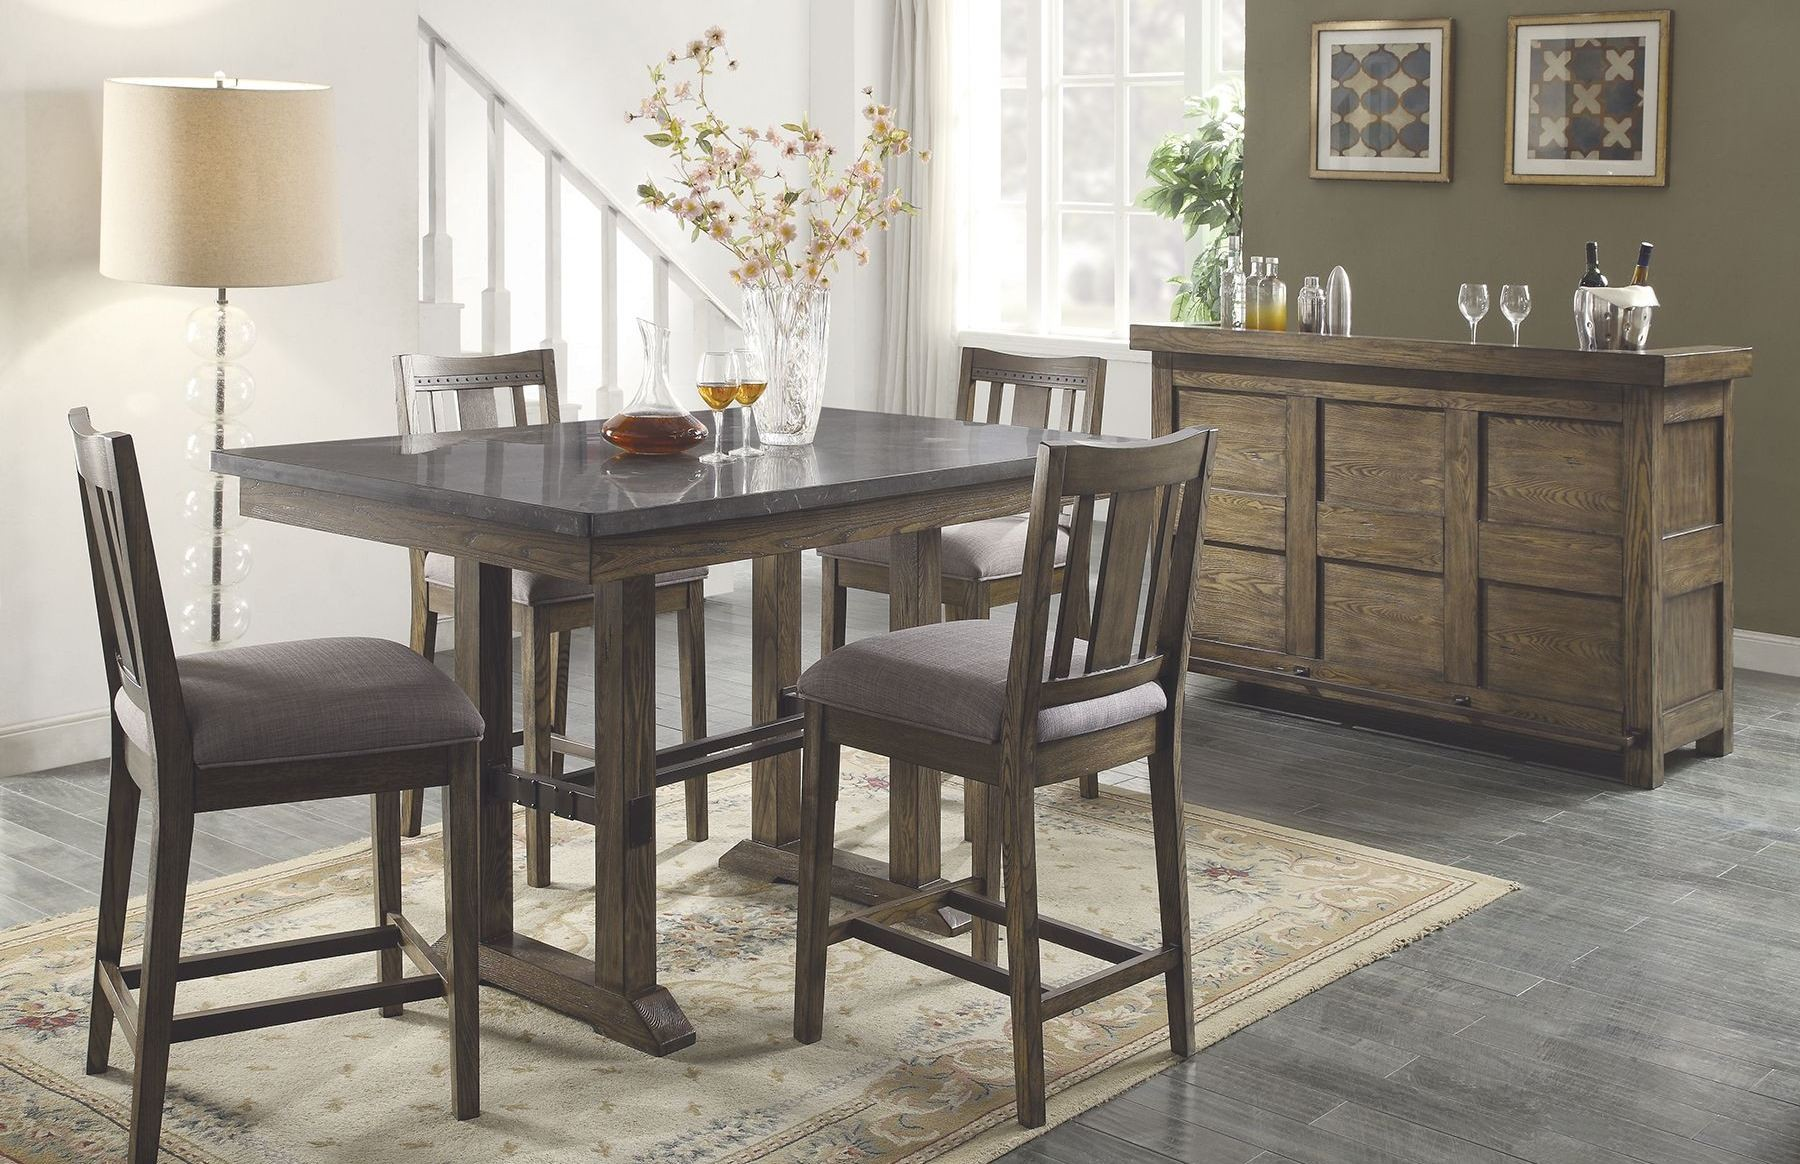 Willowbrook Rustic Ash Counter Height Dining Room Set 106988 Coaster Furniture